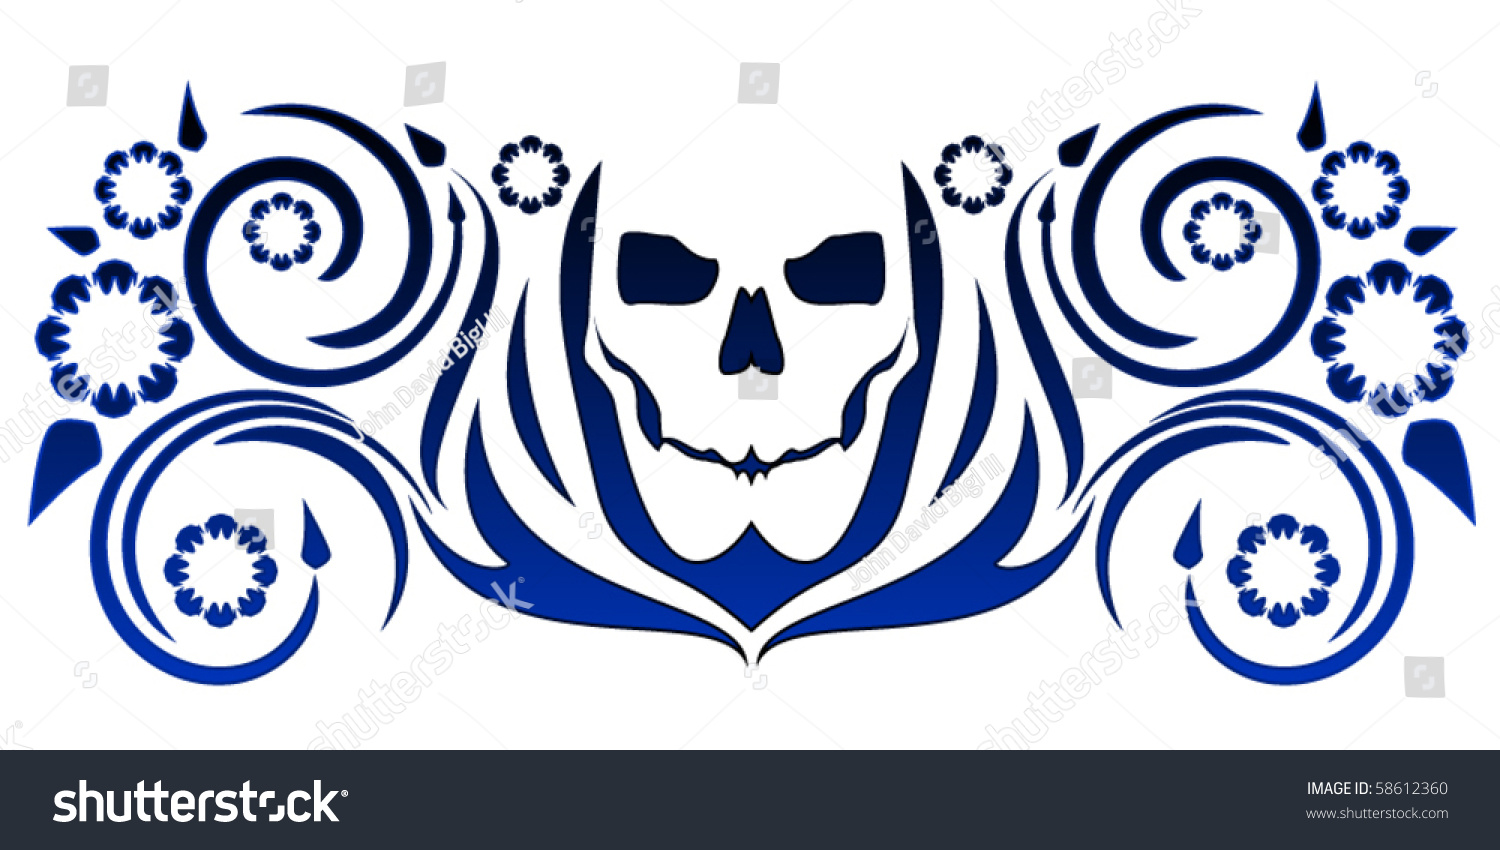 Simple skull tattoo designs - Simple Stylized Skull Tattoo With Swirly Floral Designs